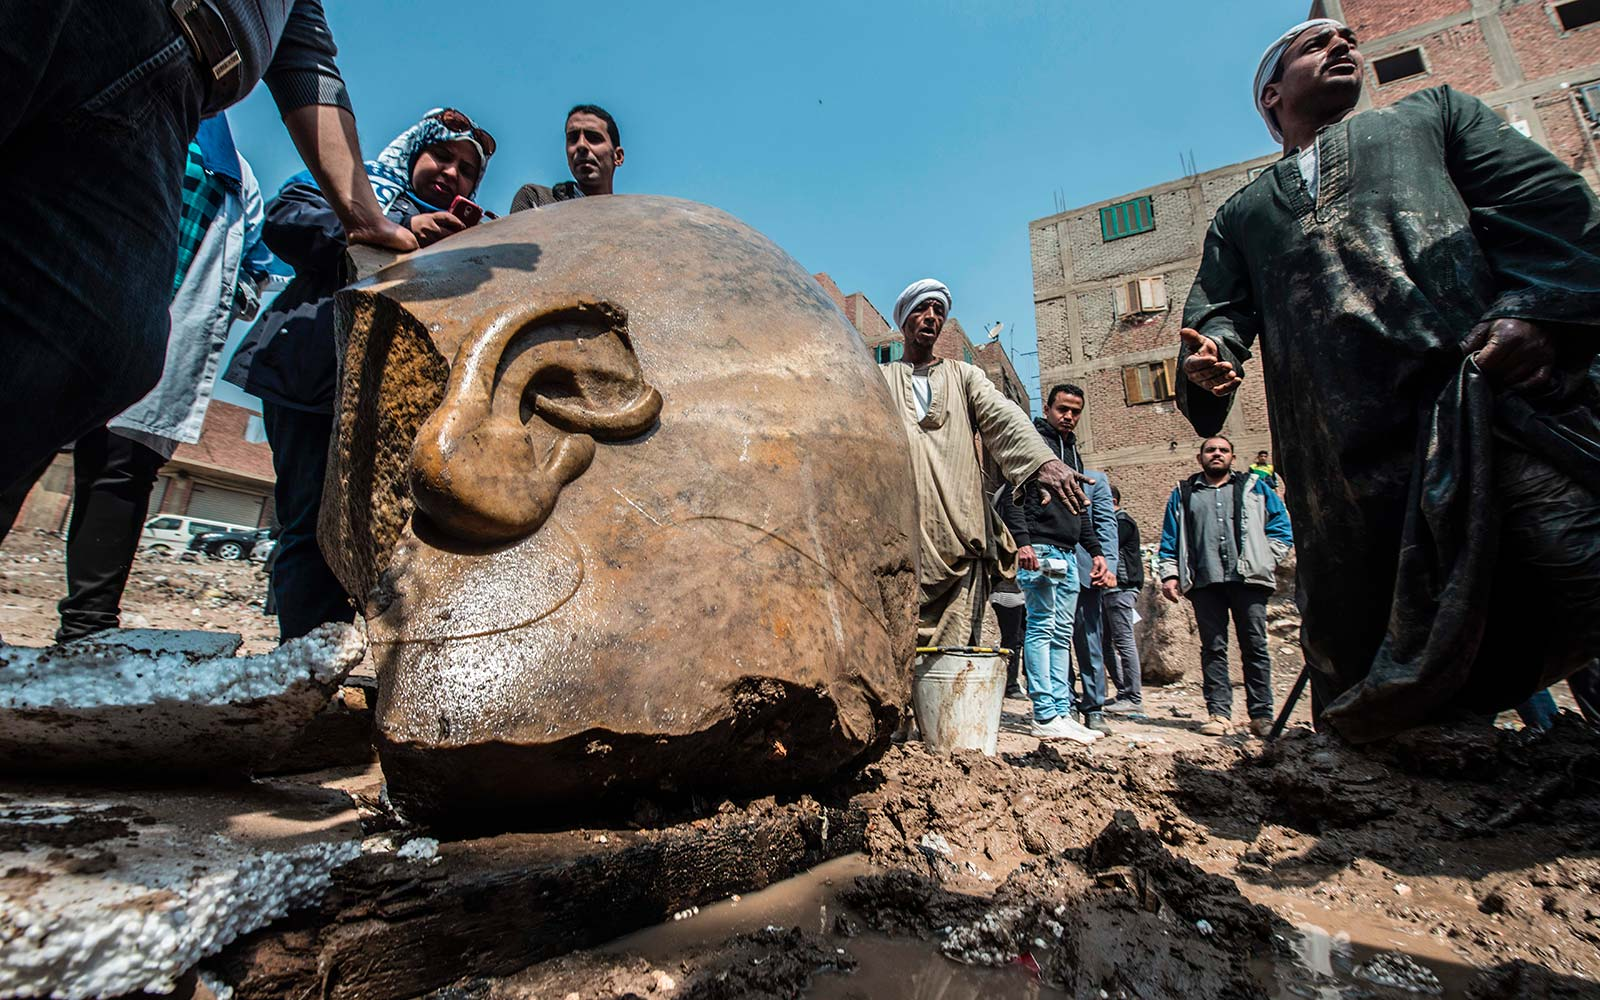 Ancient Statue Believed to be of Pharaoh Ramses II Discovered in Cairo Slum